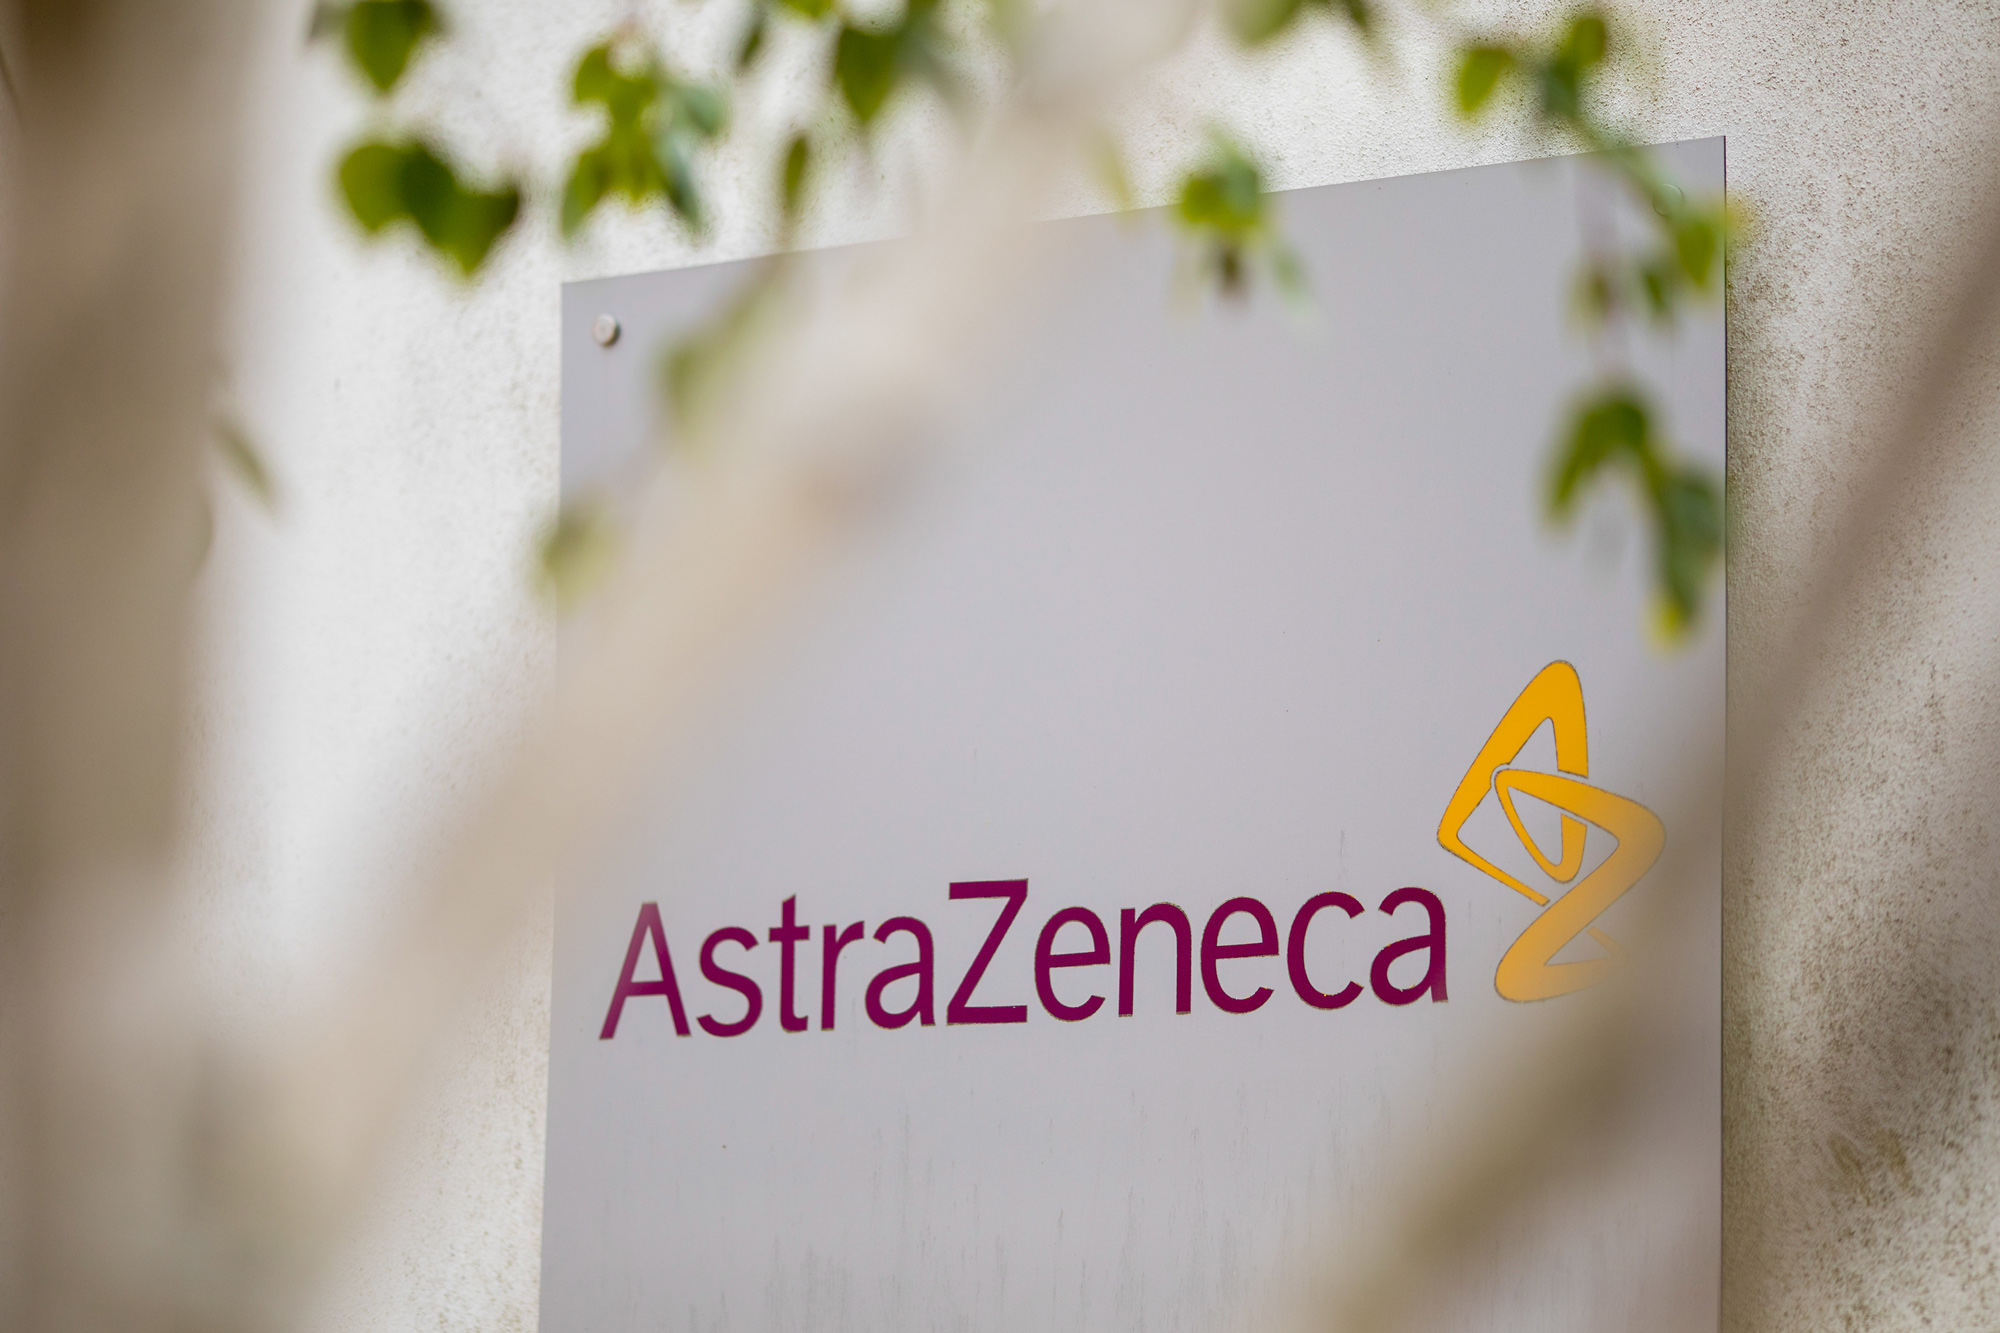 A sign featuring the AstraZeneca logo stands at the company's DaVinci building at the Melbourn Science Park in Cambridge, U.K., on June 8.